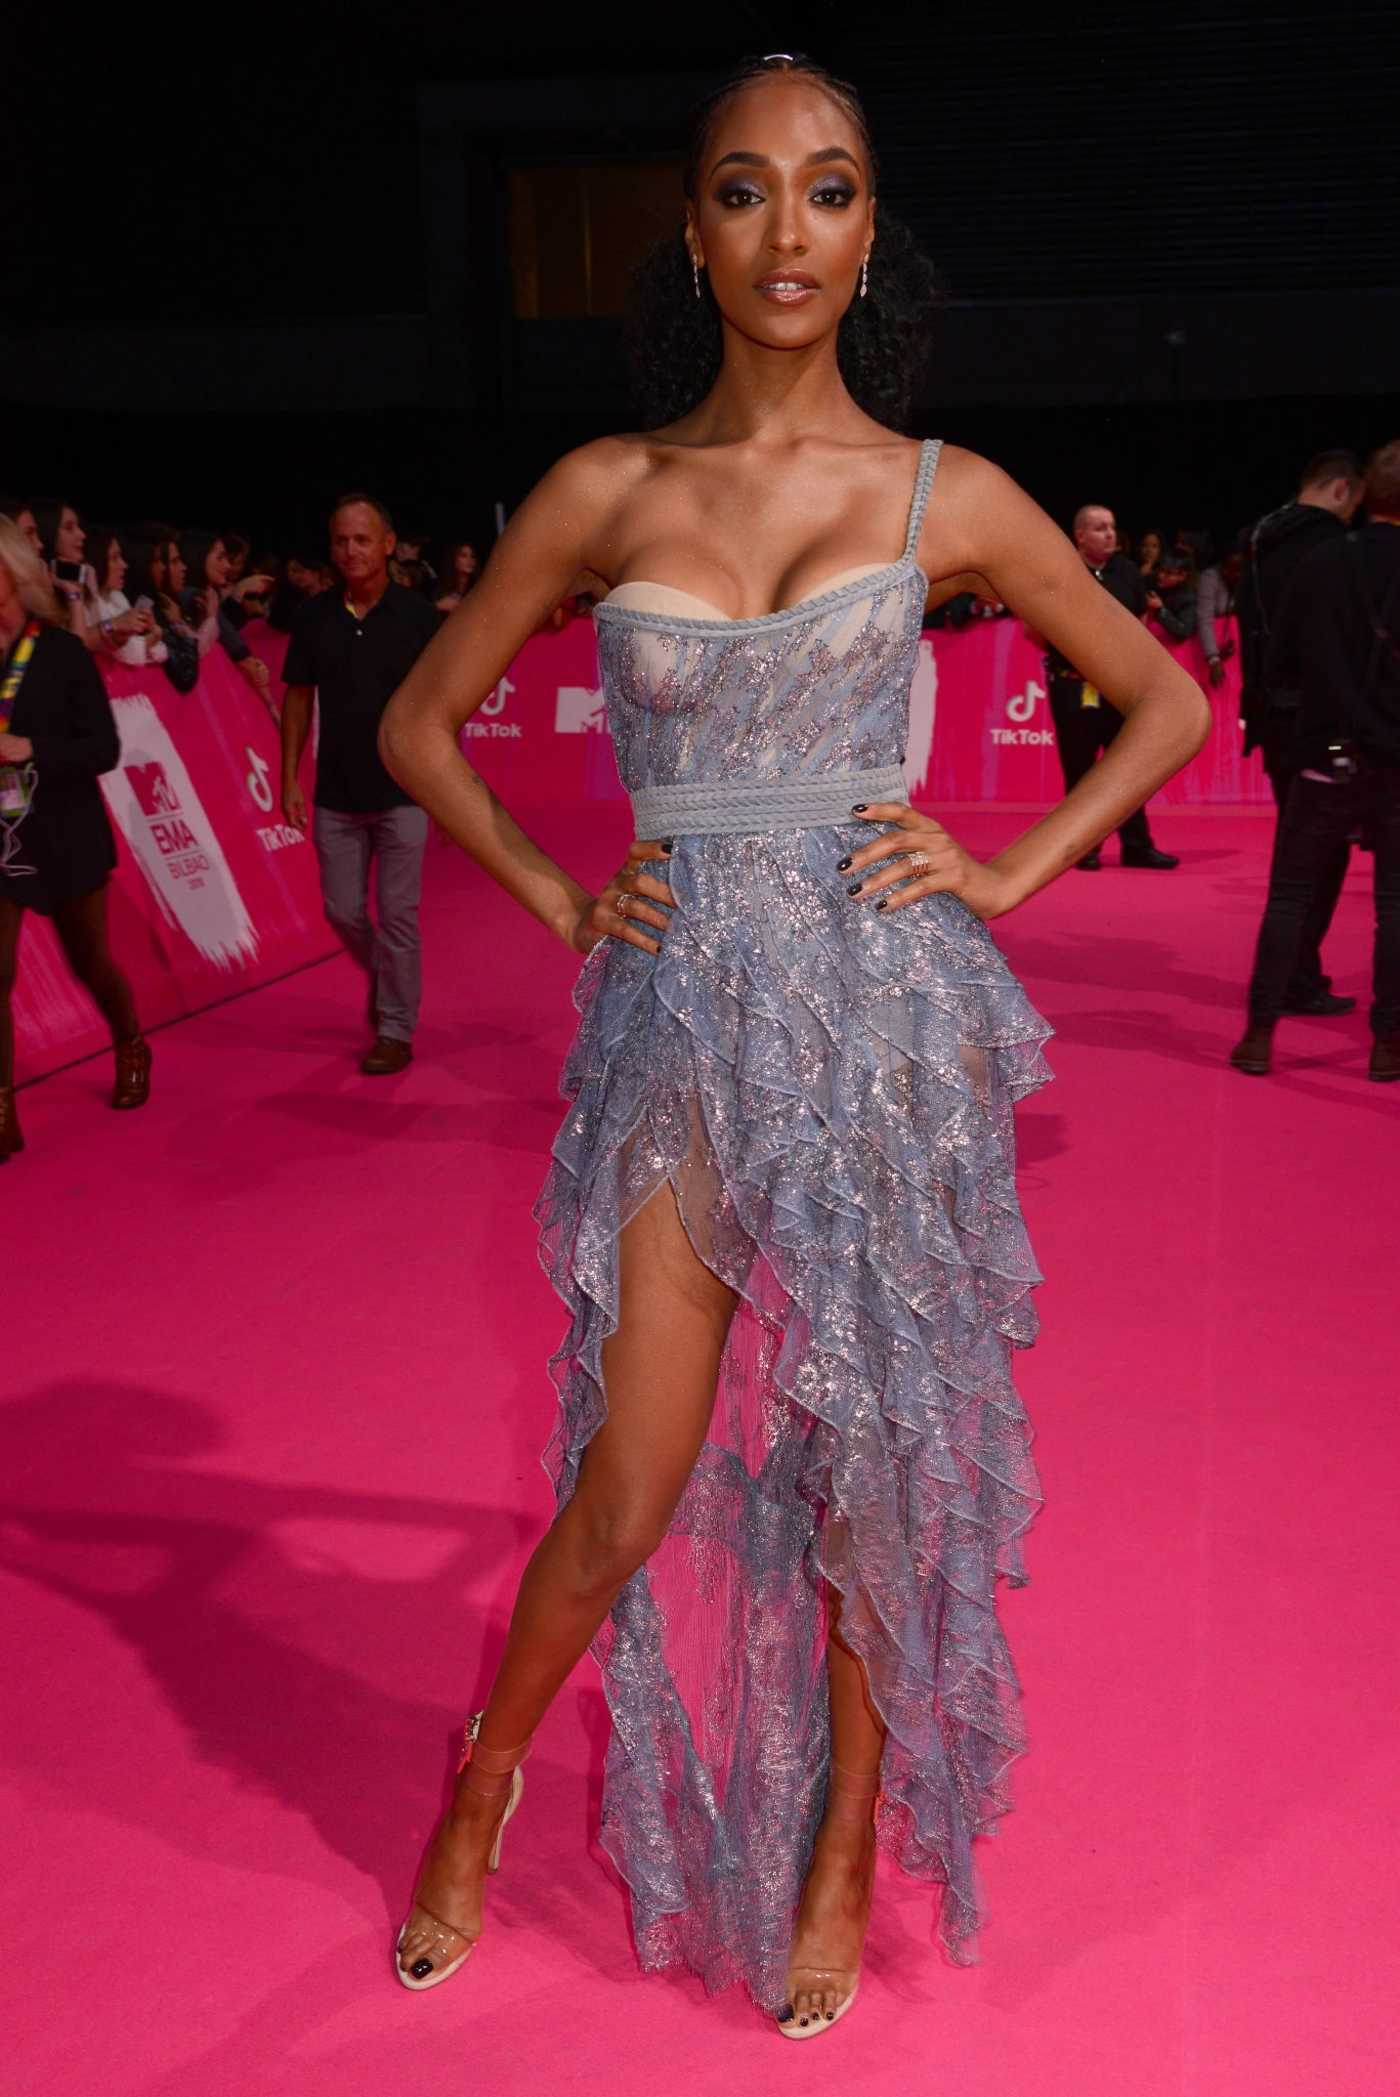 Jourdan Dunn Attends 2018 MTV EMAs at the Bilbao Exhibition Centre in Bilbao, Spain 11/04/2018